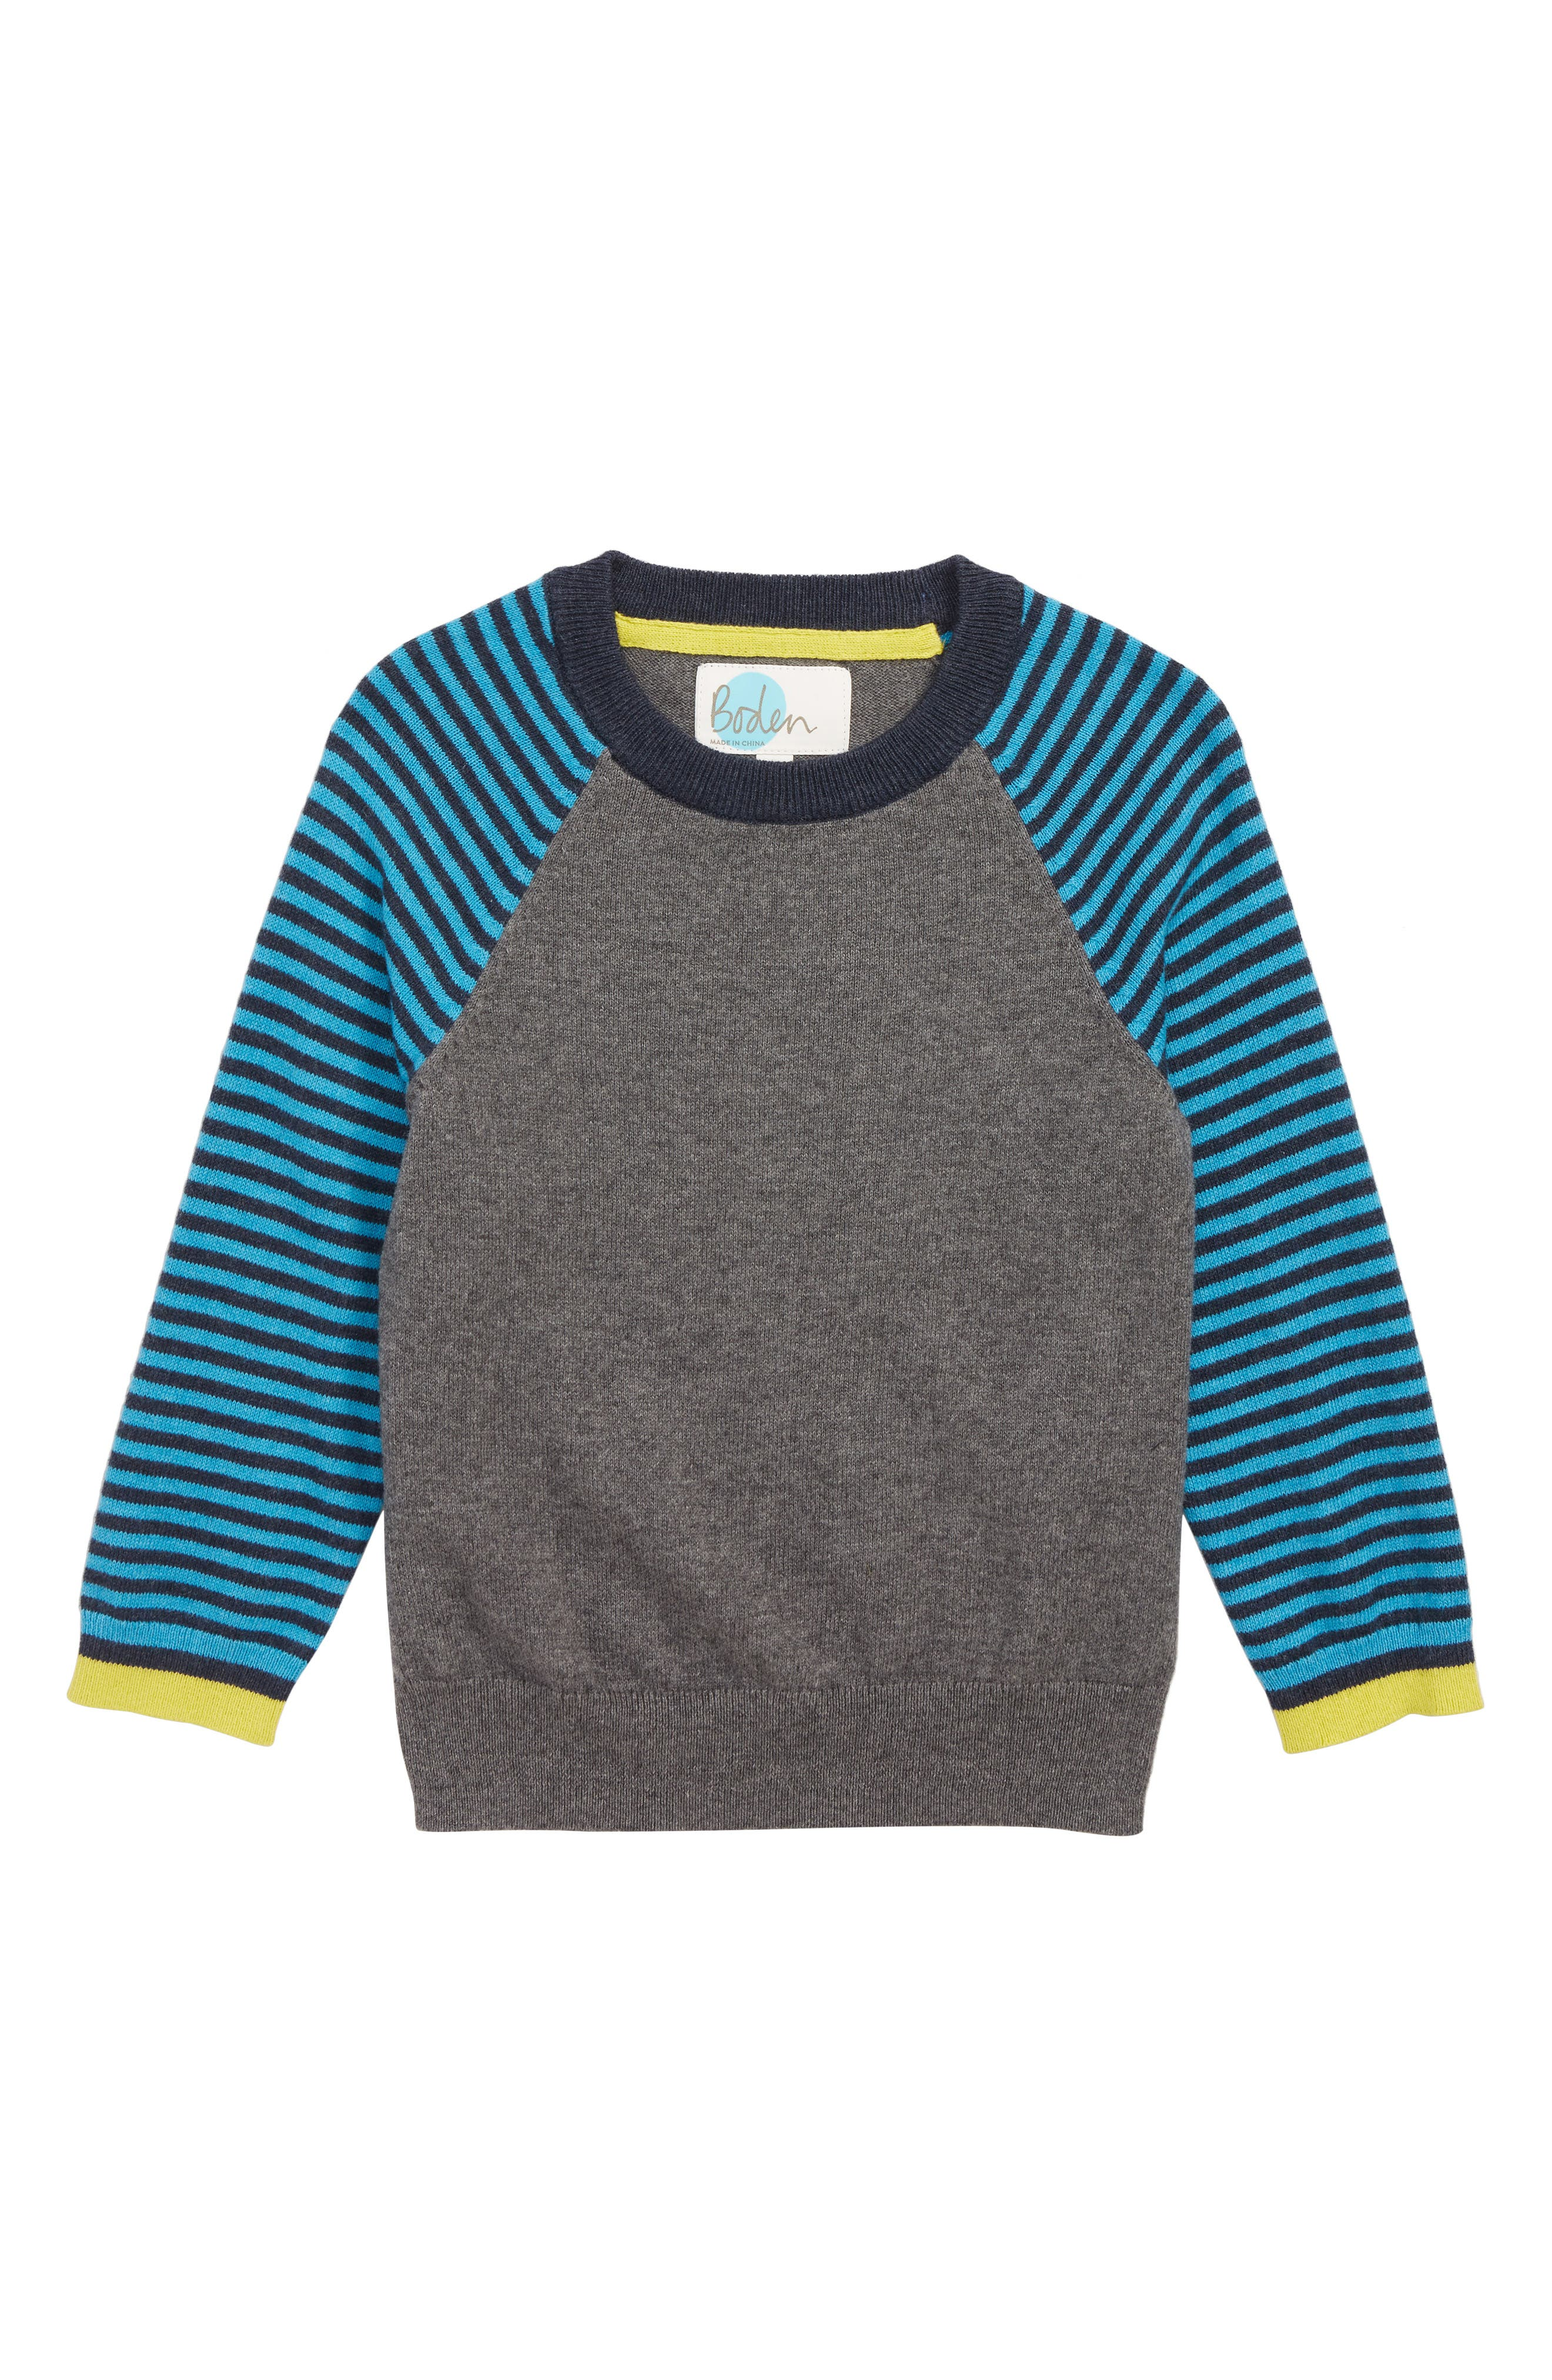 Stripe Sweater,                             Main thumbnail 1, color,                             CHARCOAL MARL/ ASTRO GREEN